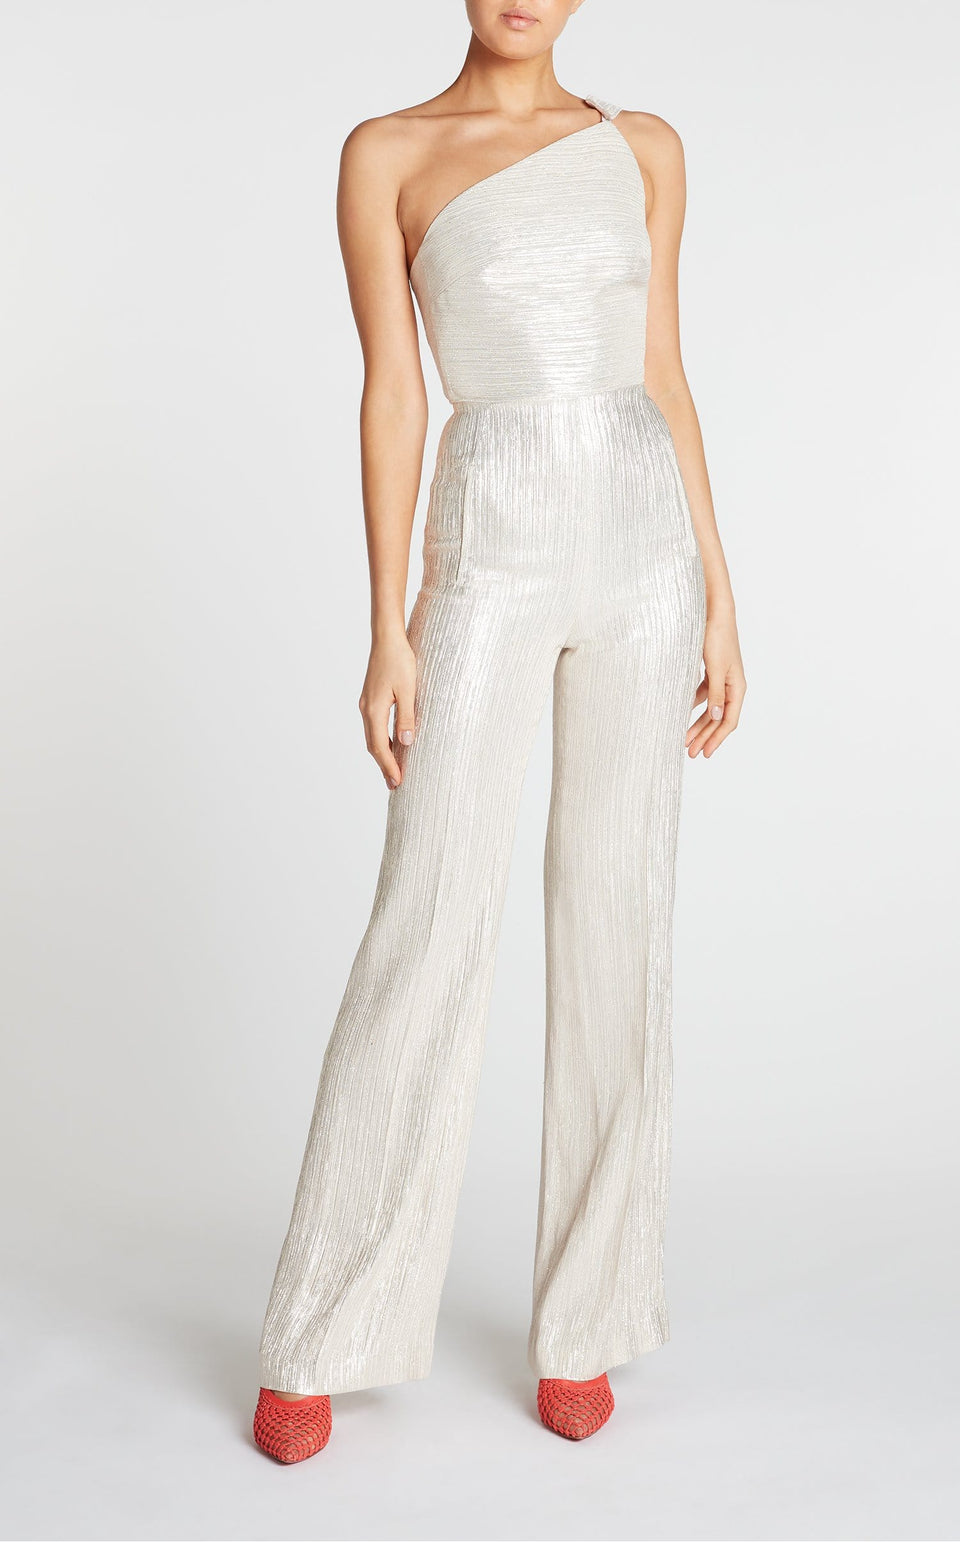 Truro Jumpsuit In Champagne from Roland Mouret